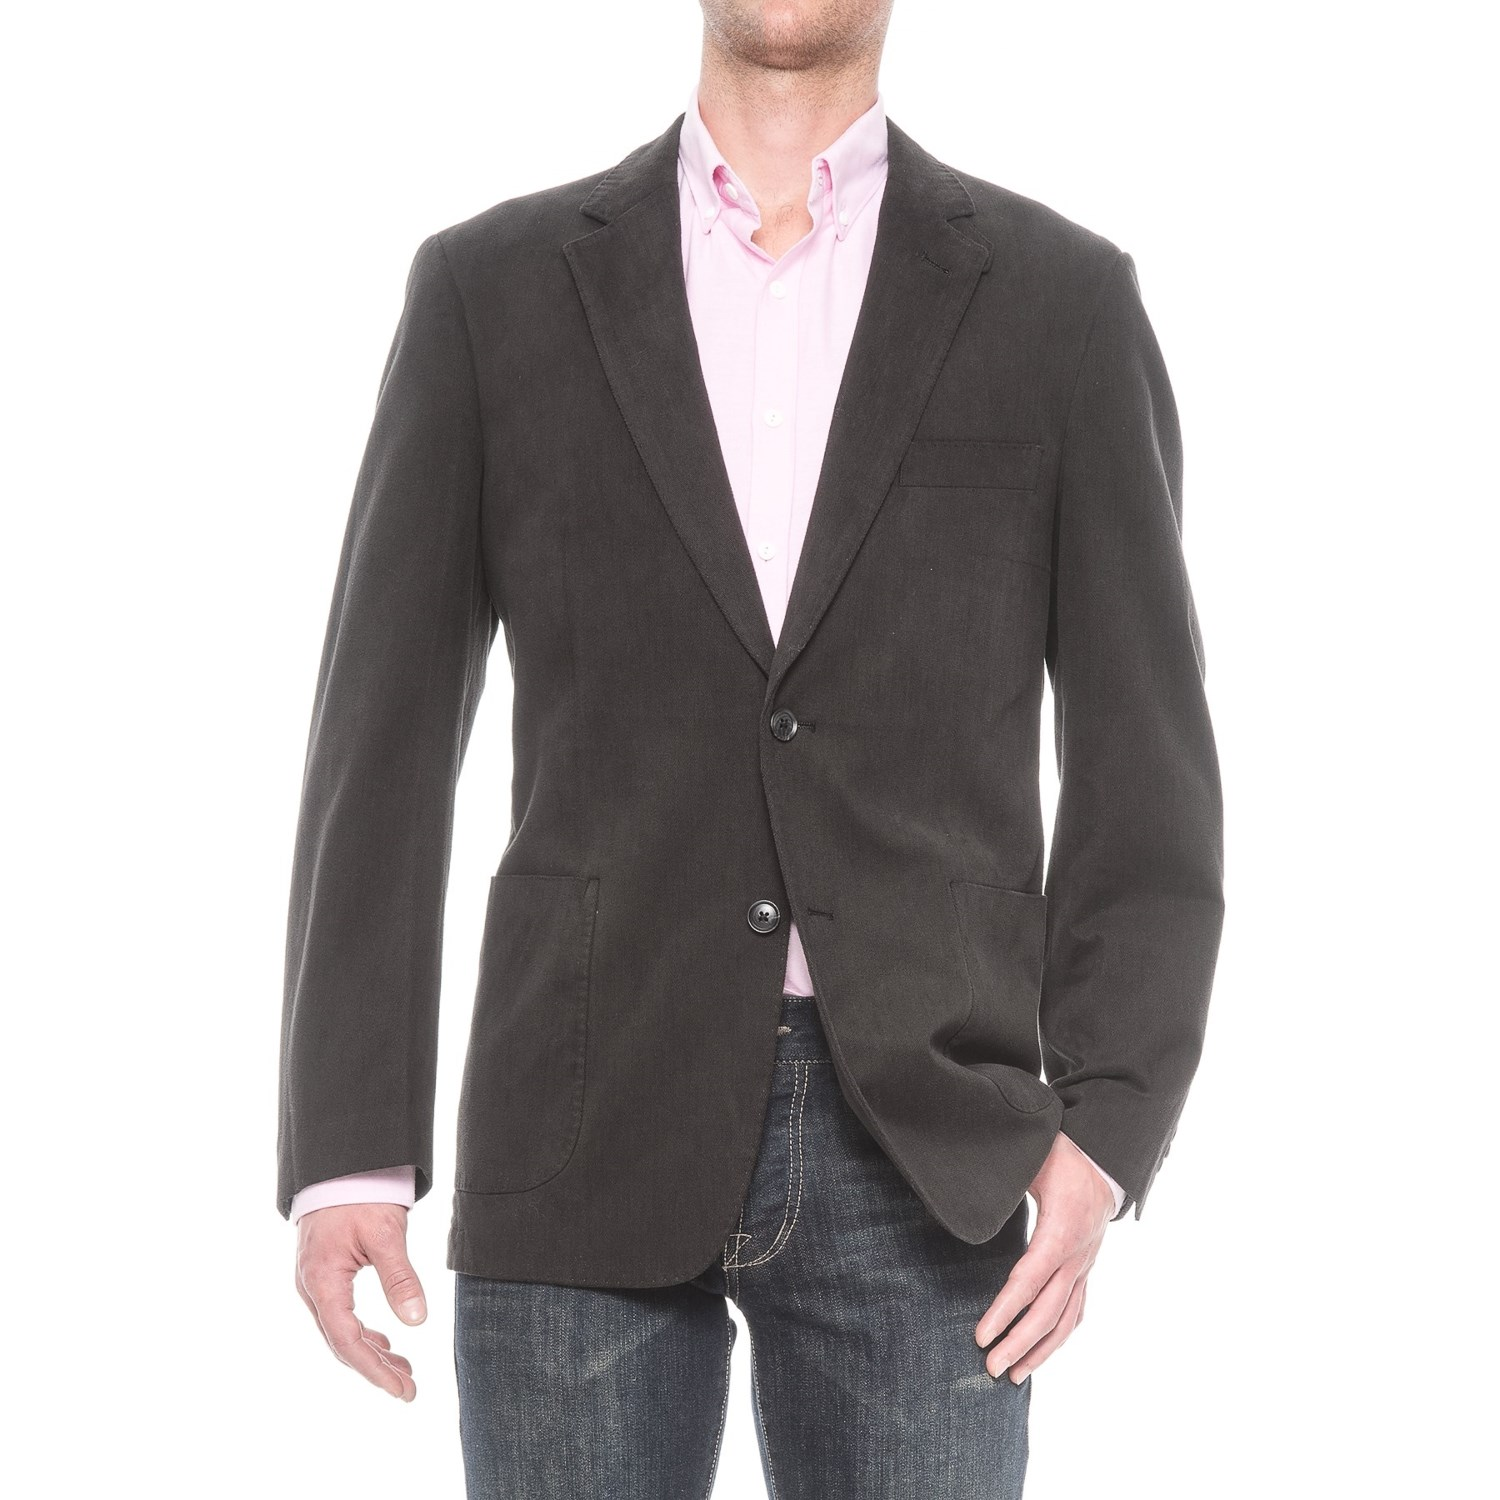 Kroon Bono 2 Sport Coat (For Men) - Save 69%